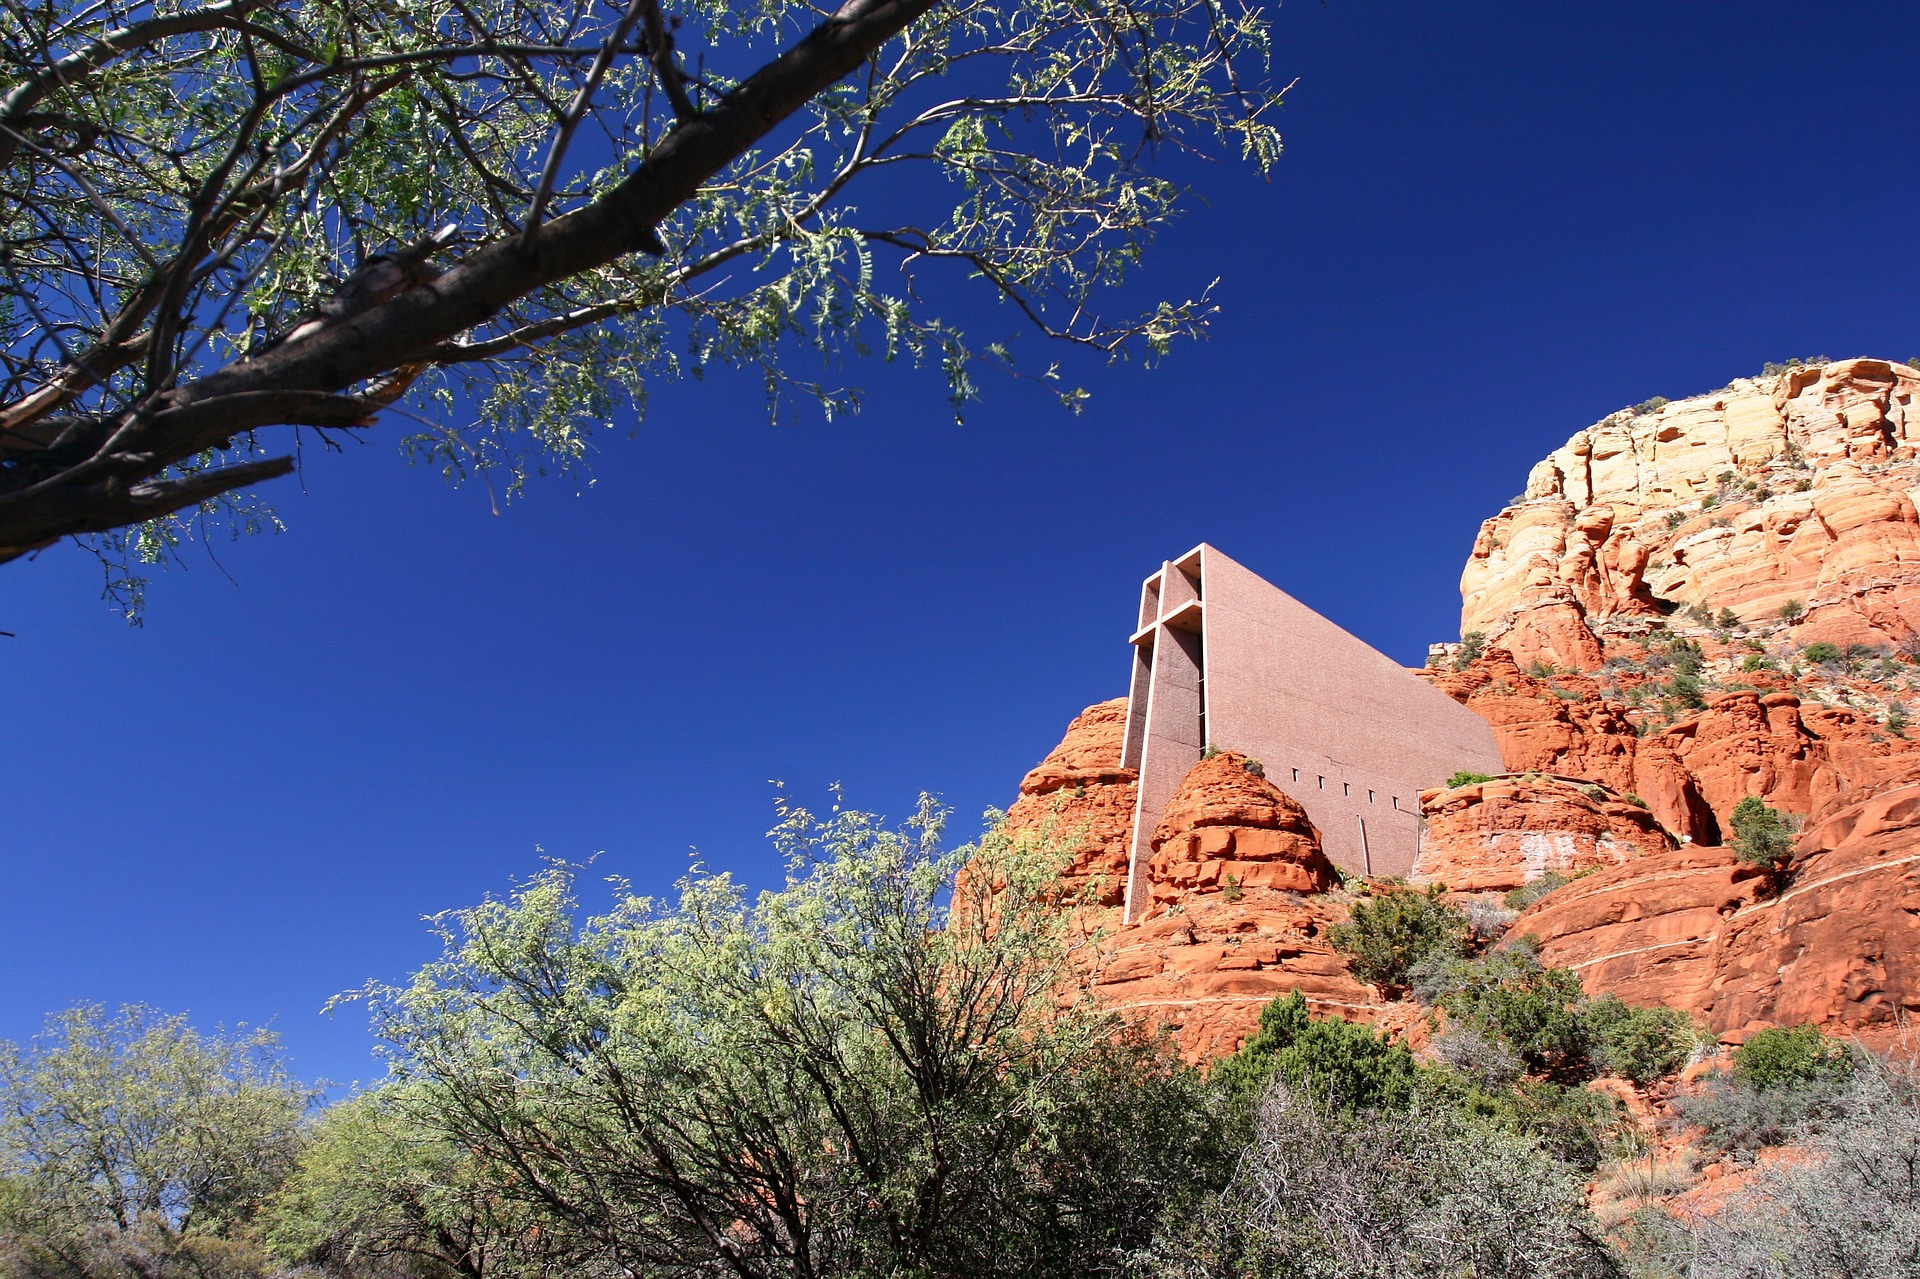 Chapel of the Holy Cross in Sedona, Arizona, USA